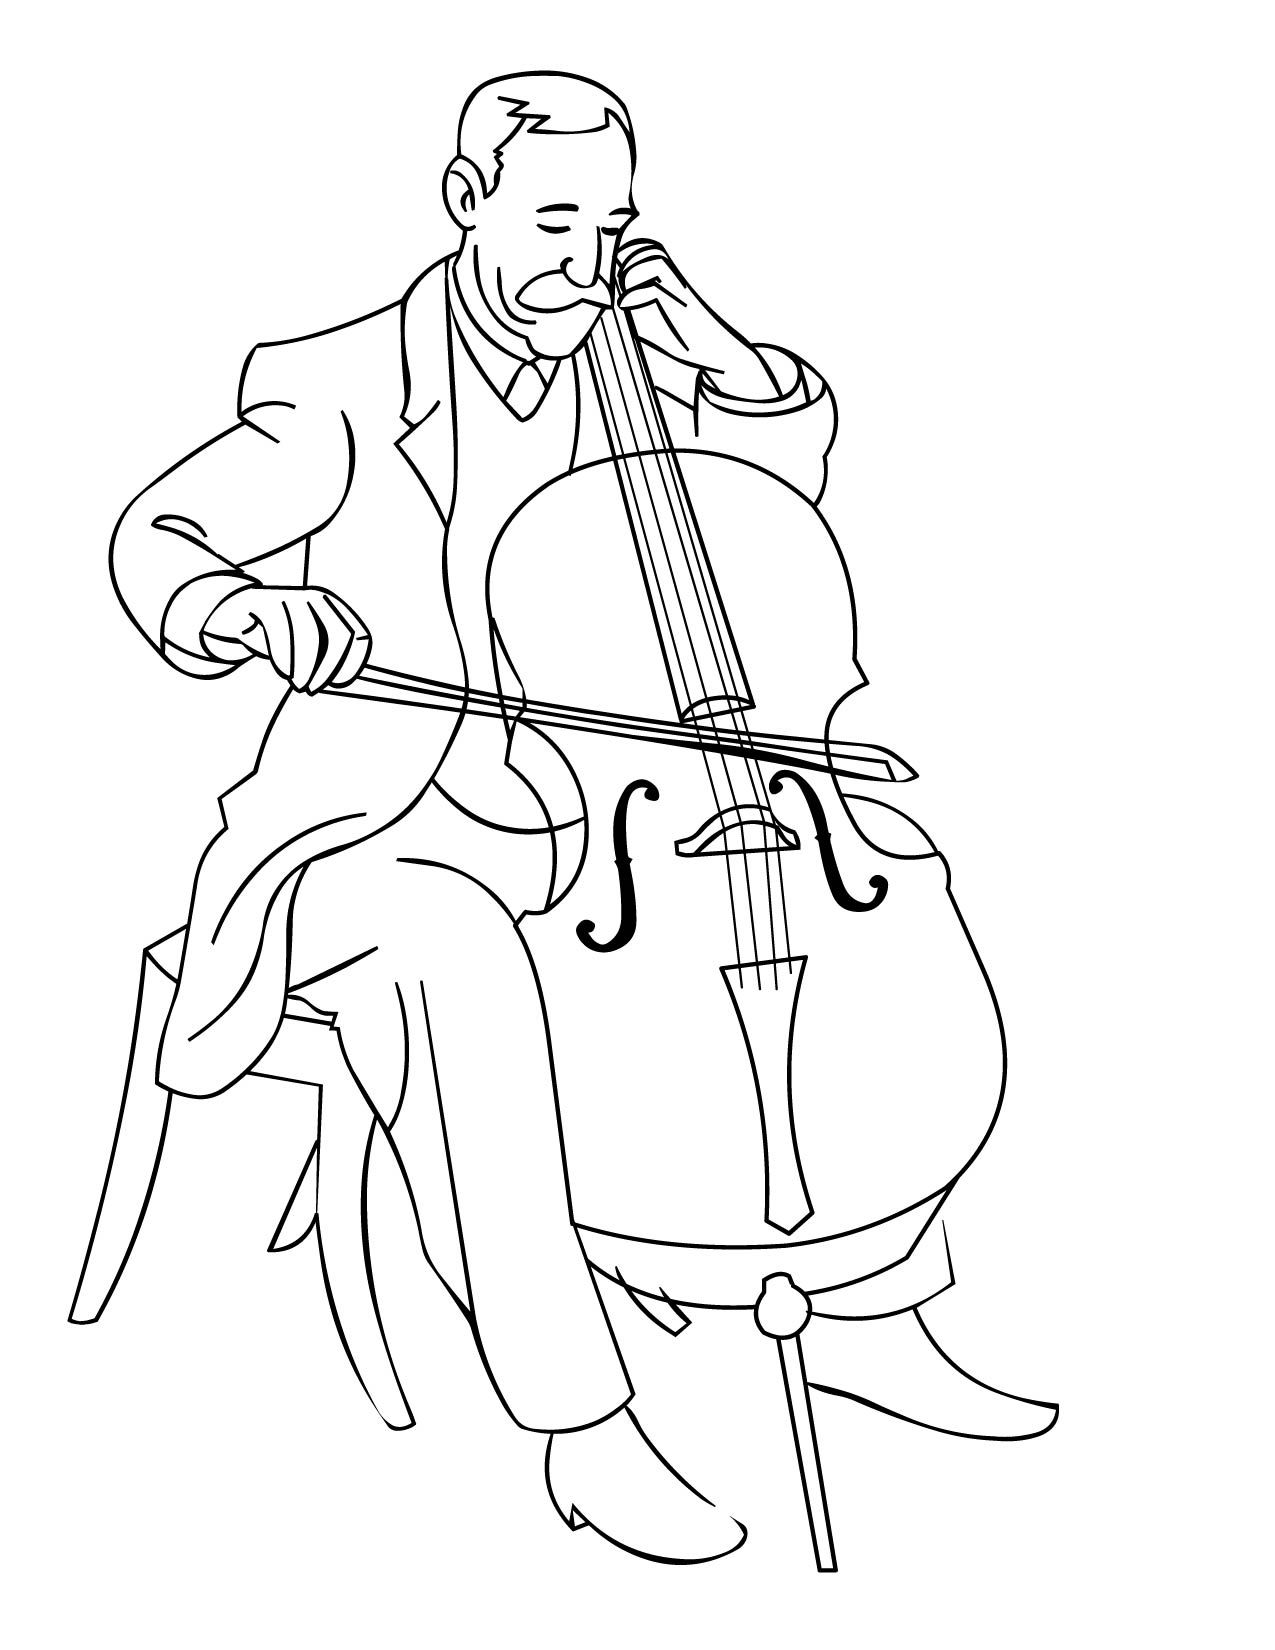 Music Coloring Pages | Musical Drums Coloring, Drums, Kids ...